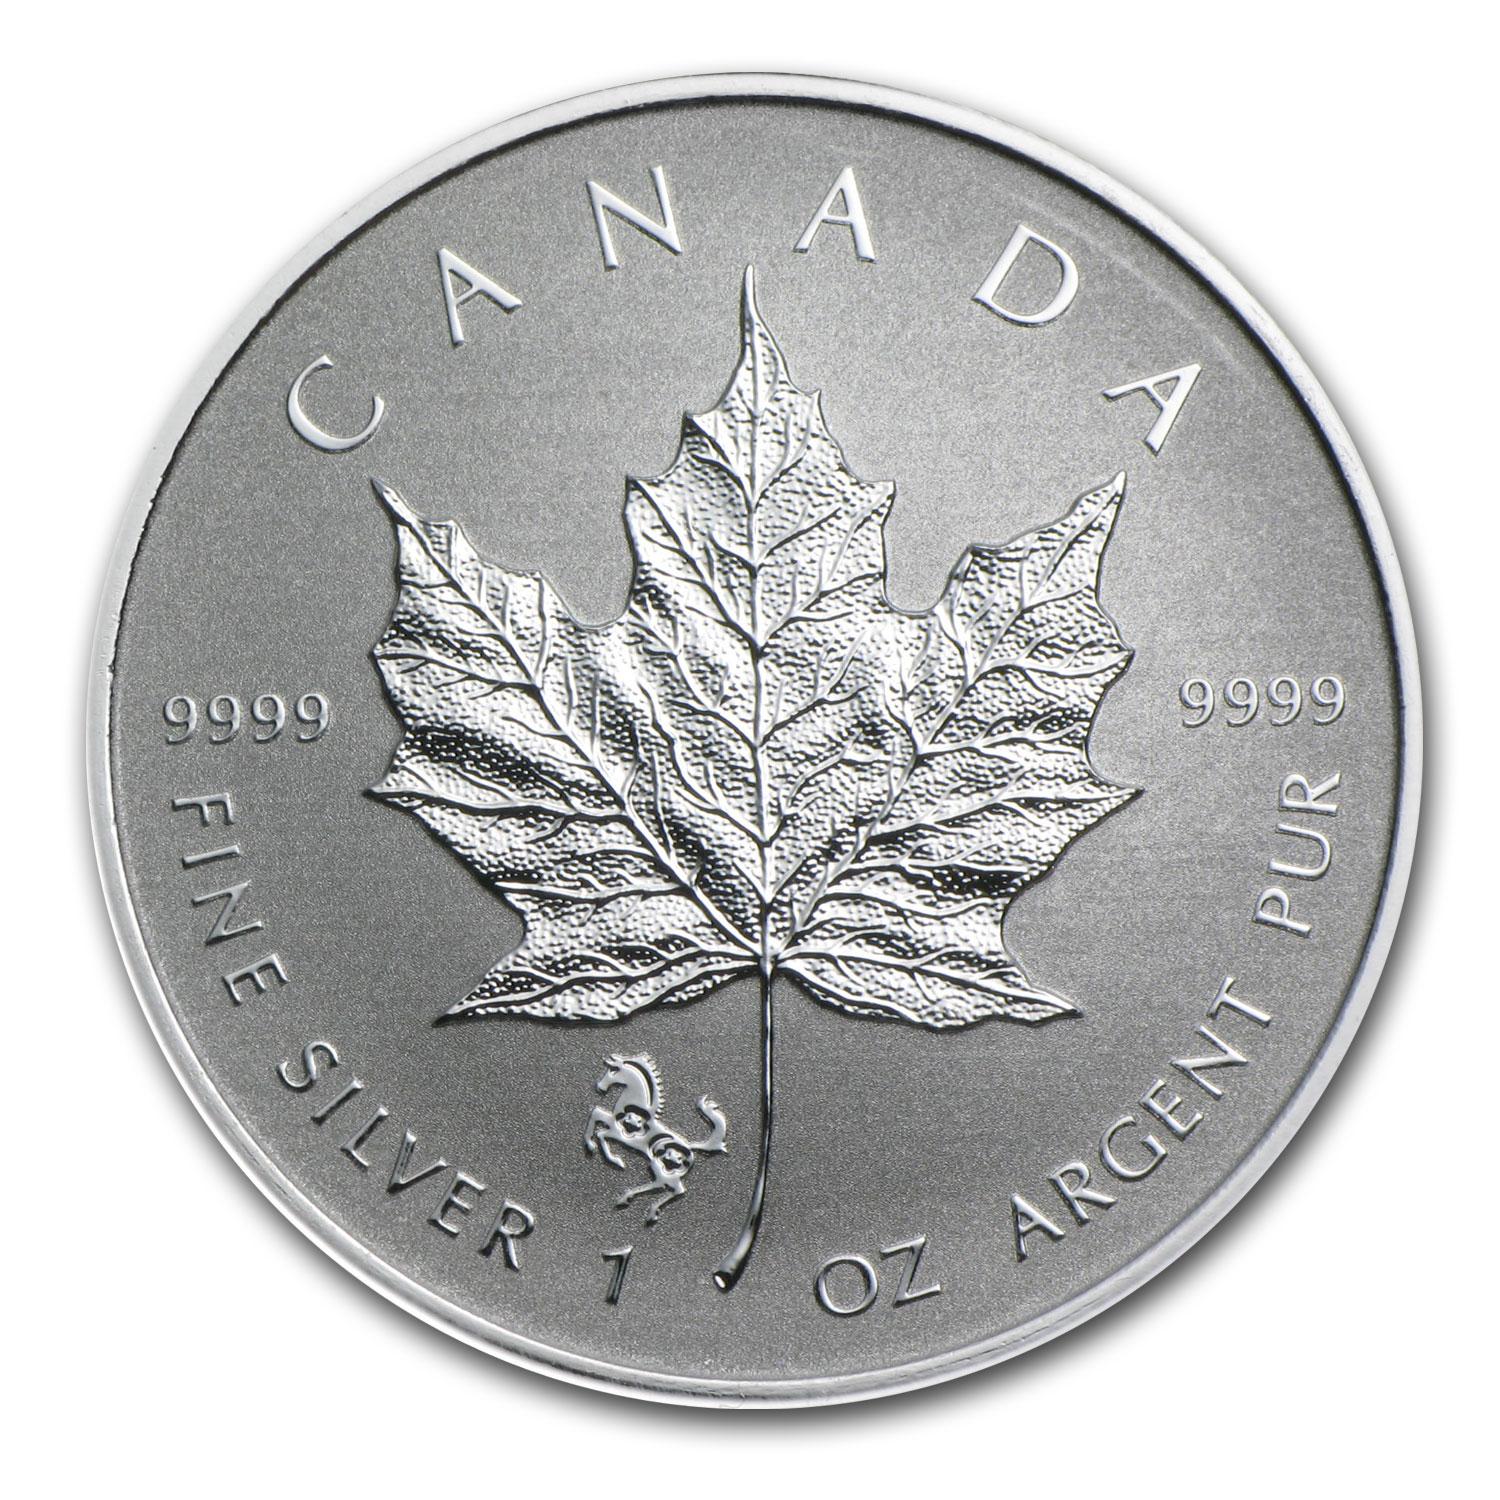 2014 Canada 1 oz Silver Maple Leaf Lunar Horse Privy